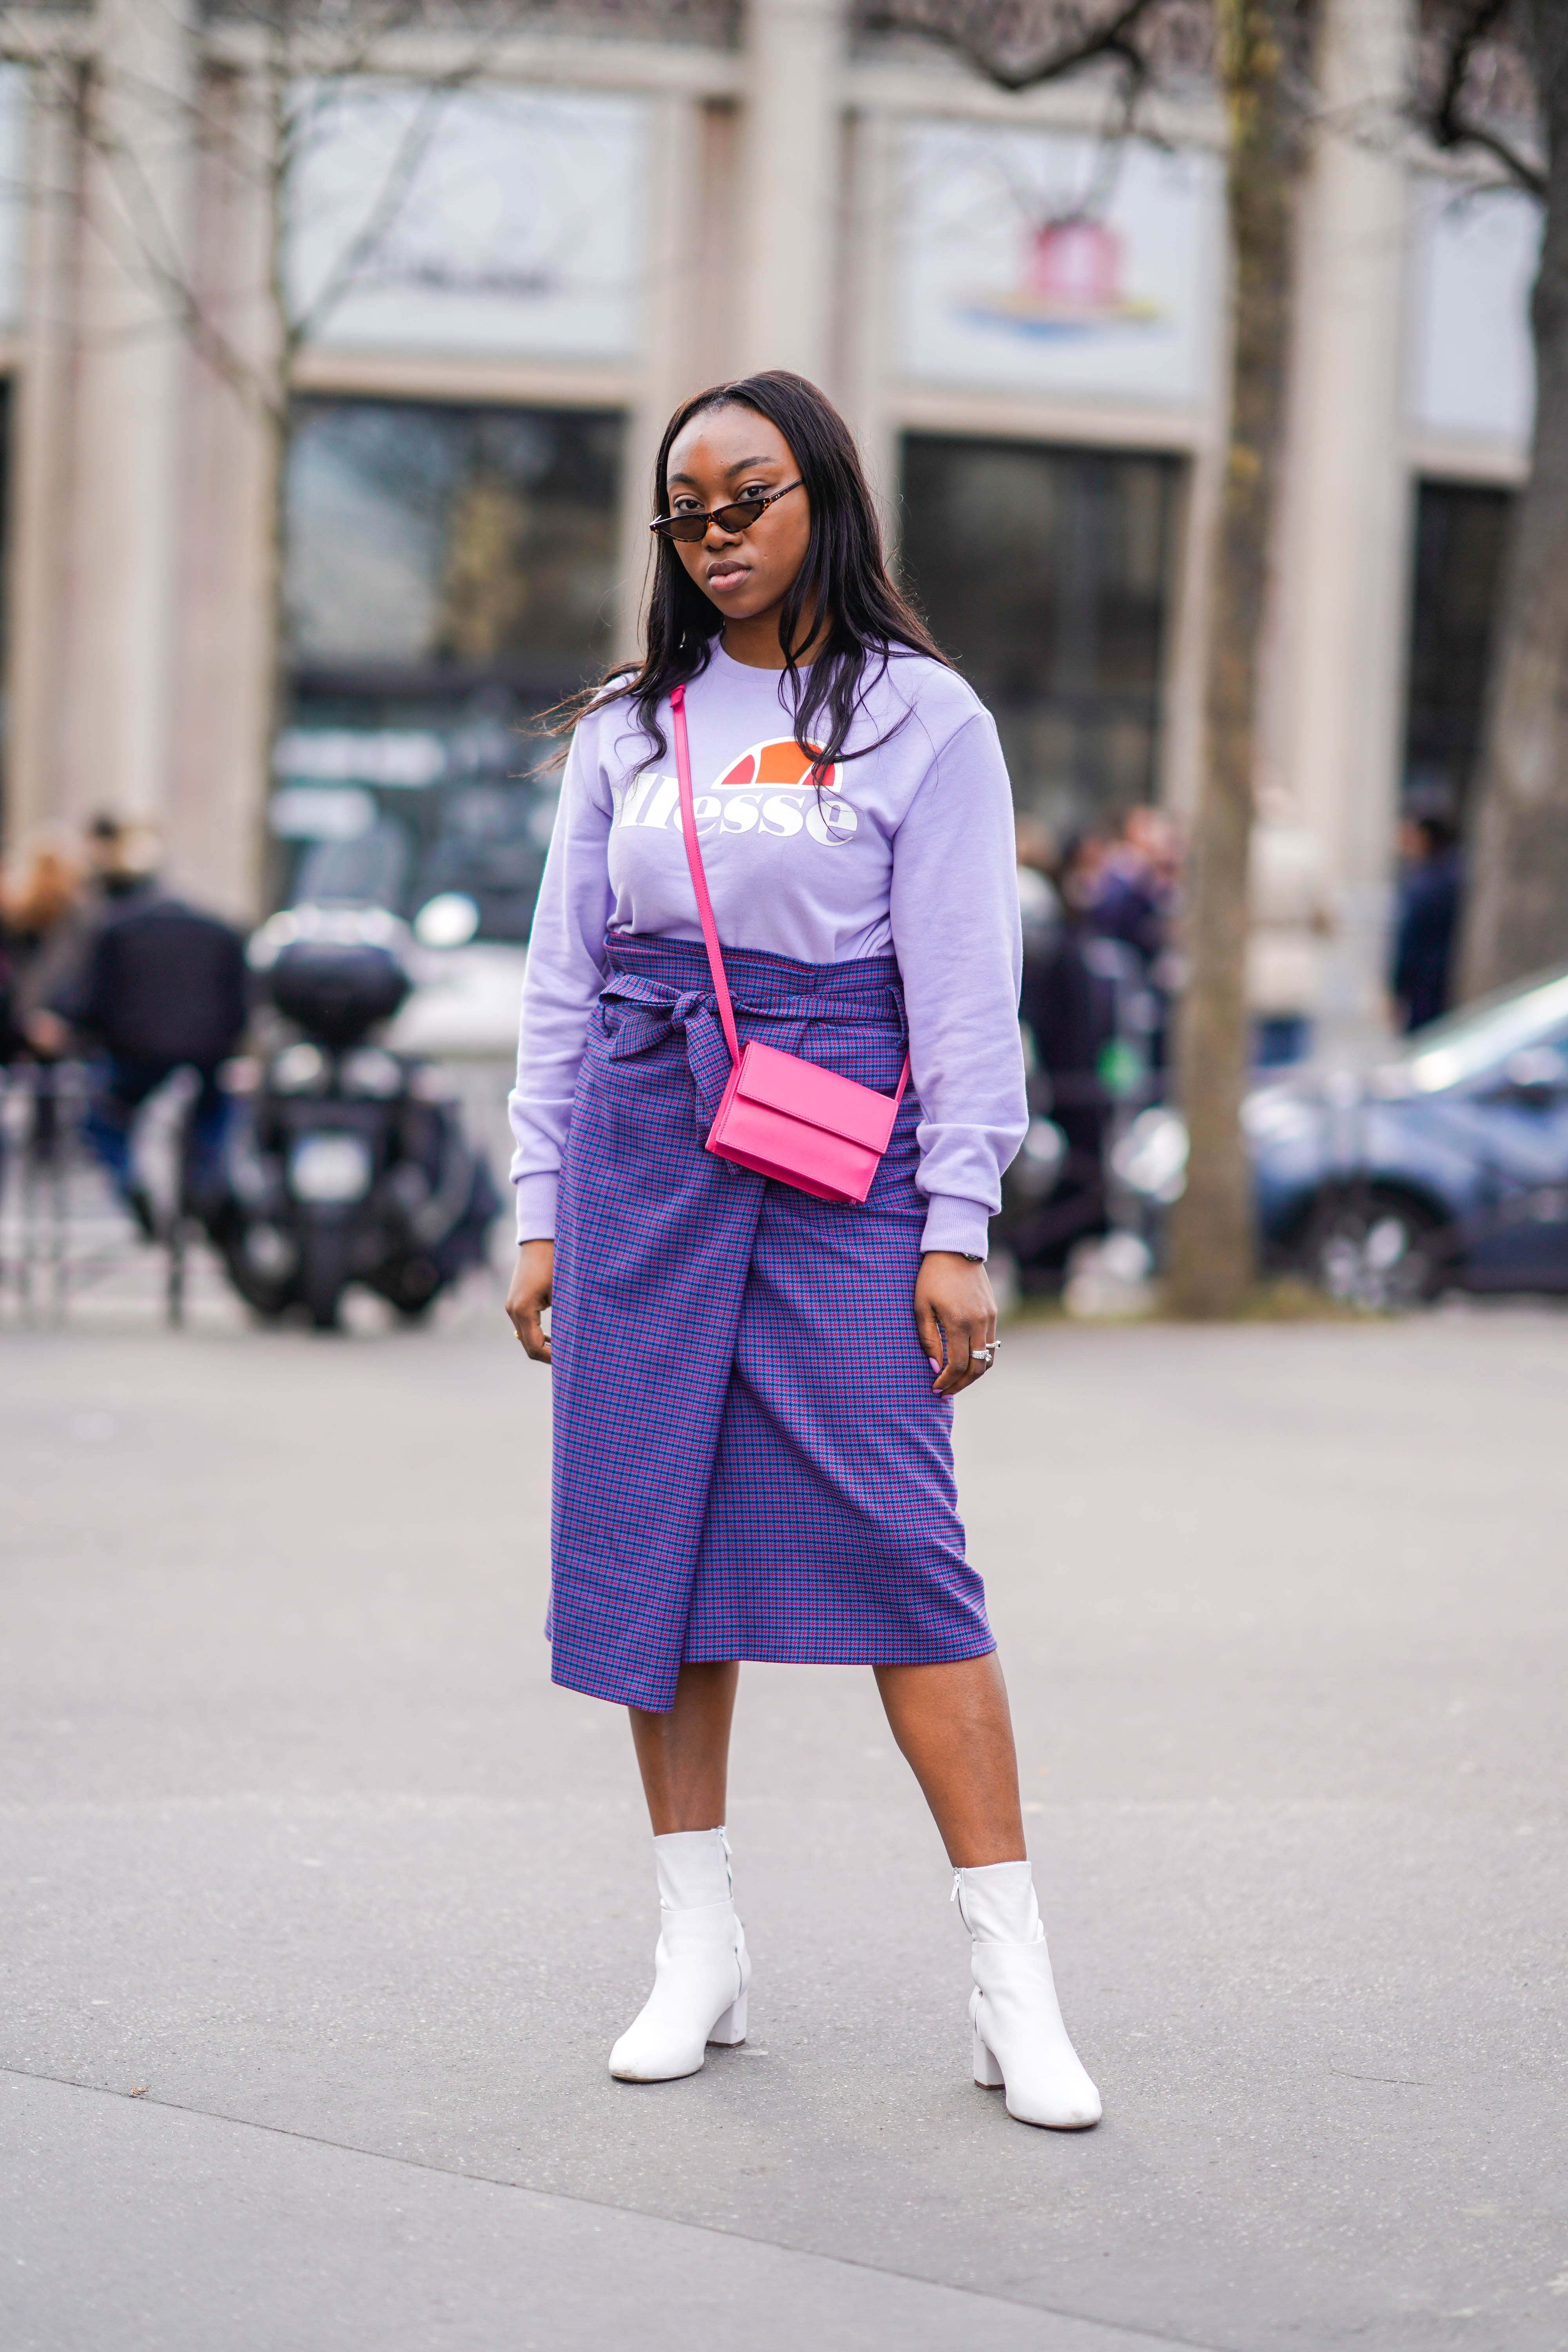 Monochromatic Outfits Are Trending For Spring 2018